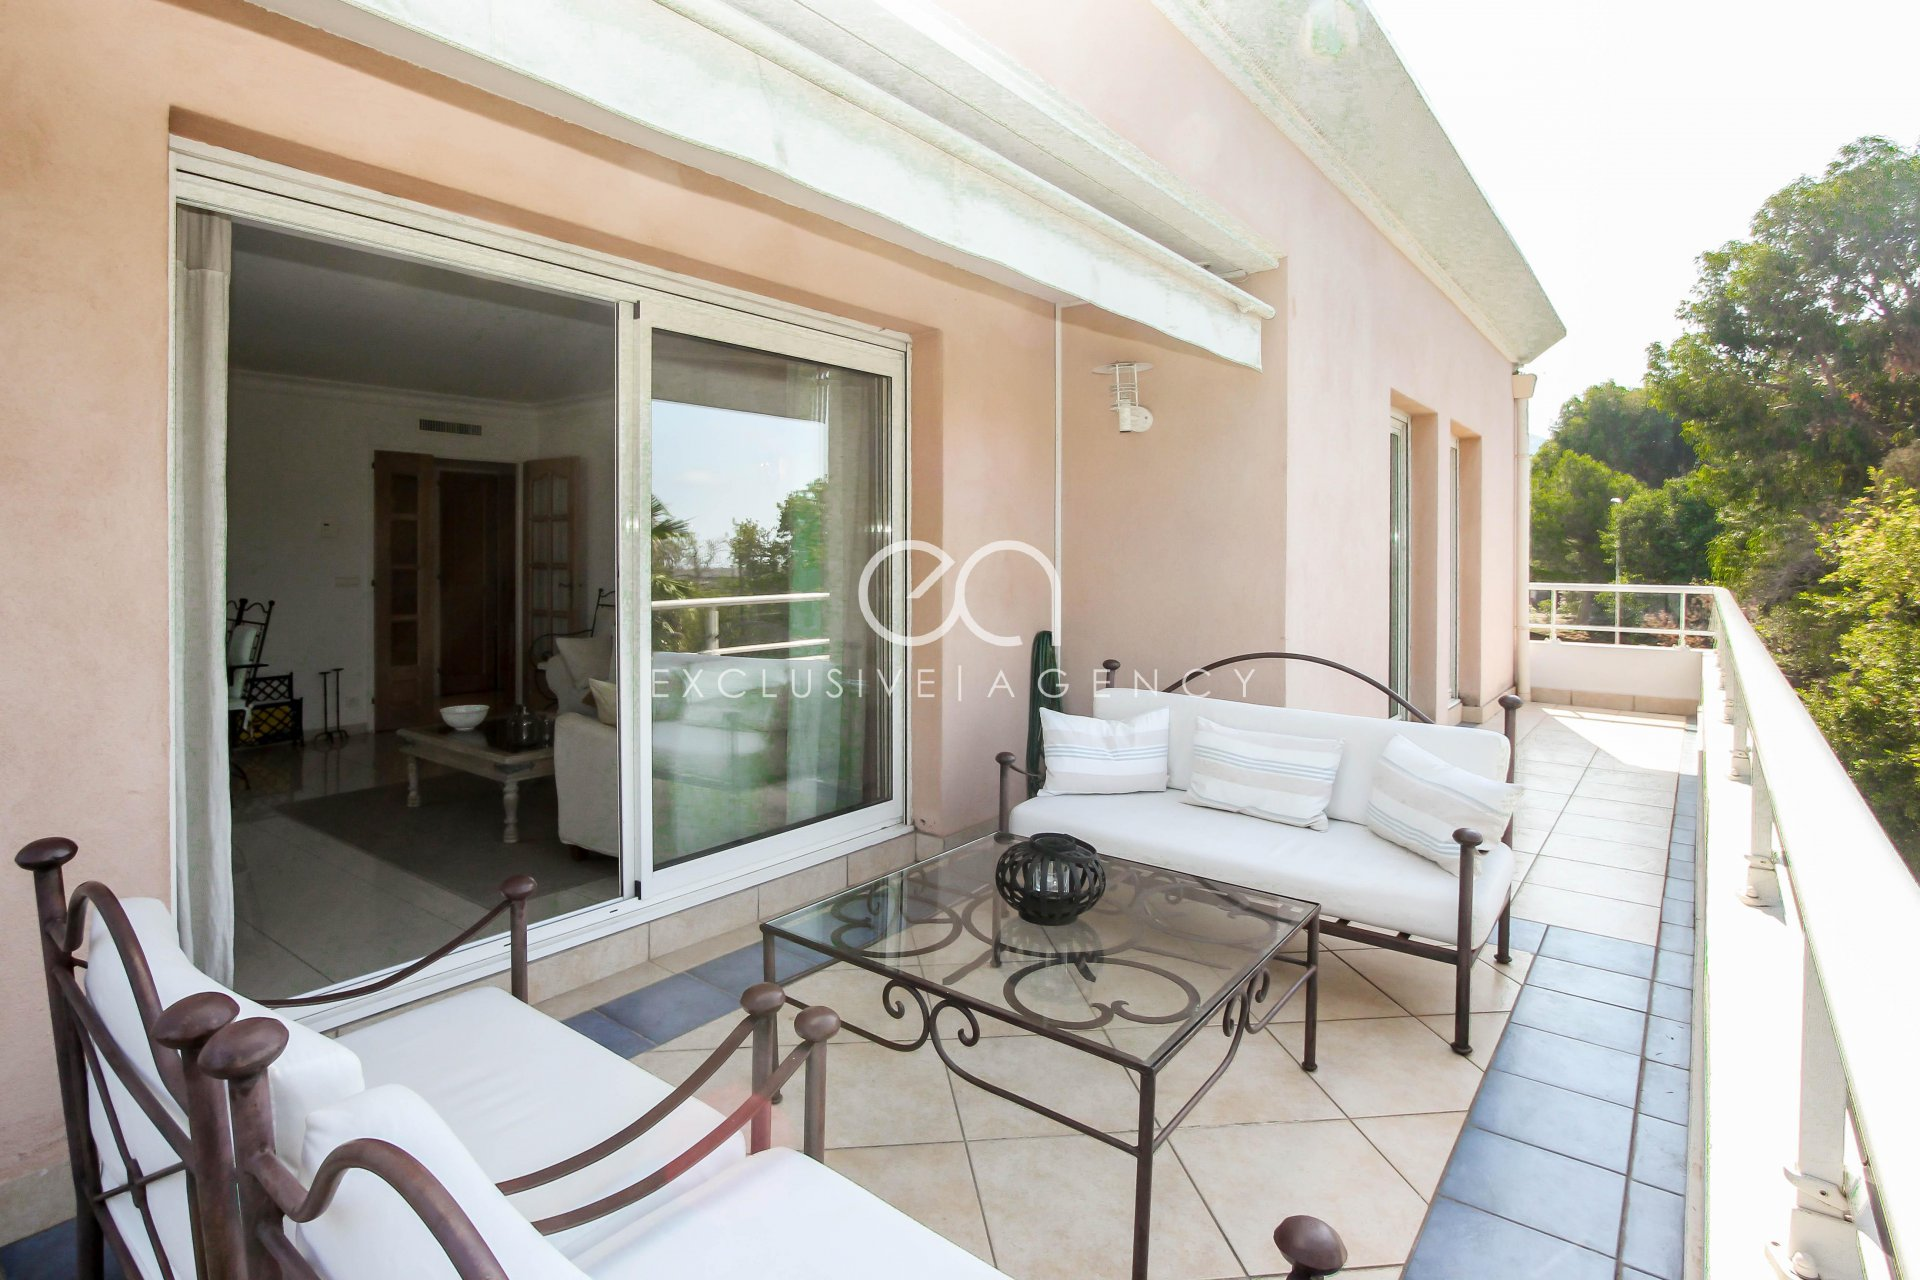 Cannes Californie short rental 2 bedrooms apartment 70m² for 2 to 4 people.